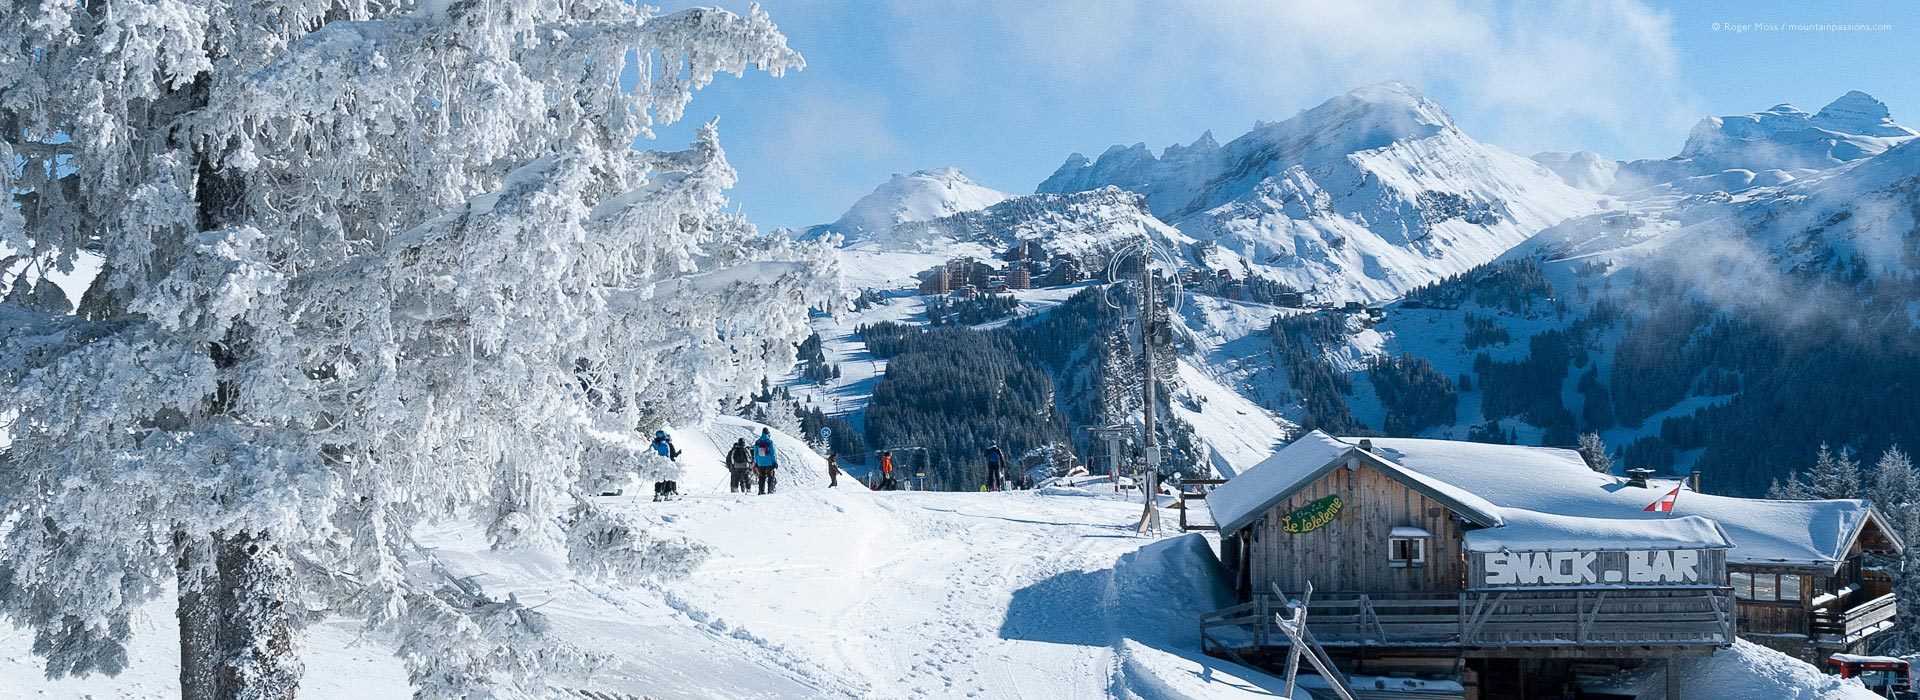 Wide view of skiers amid snowy landscapes.